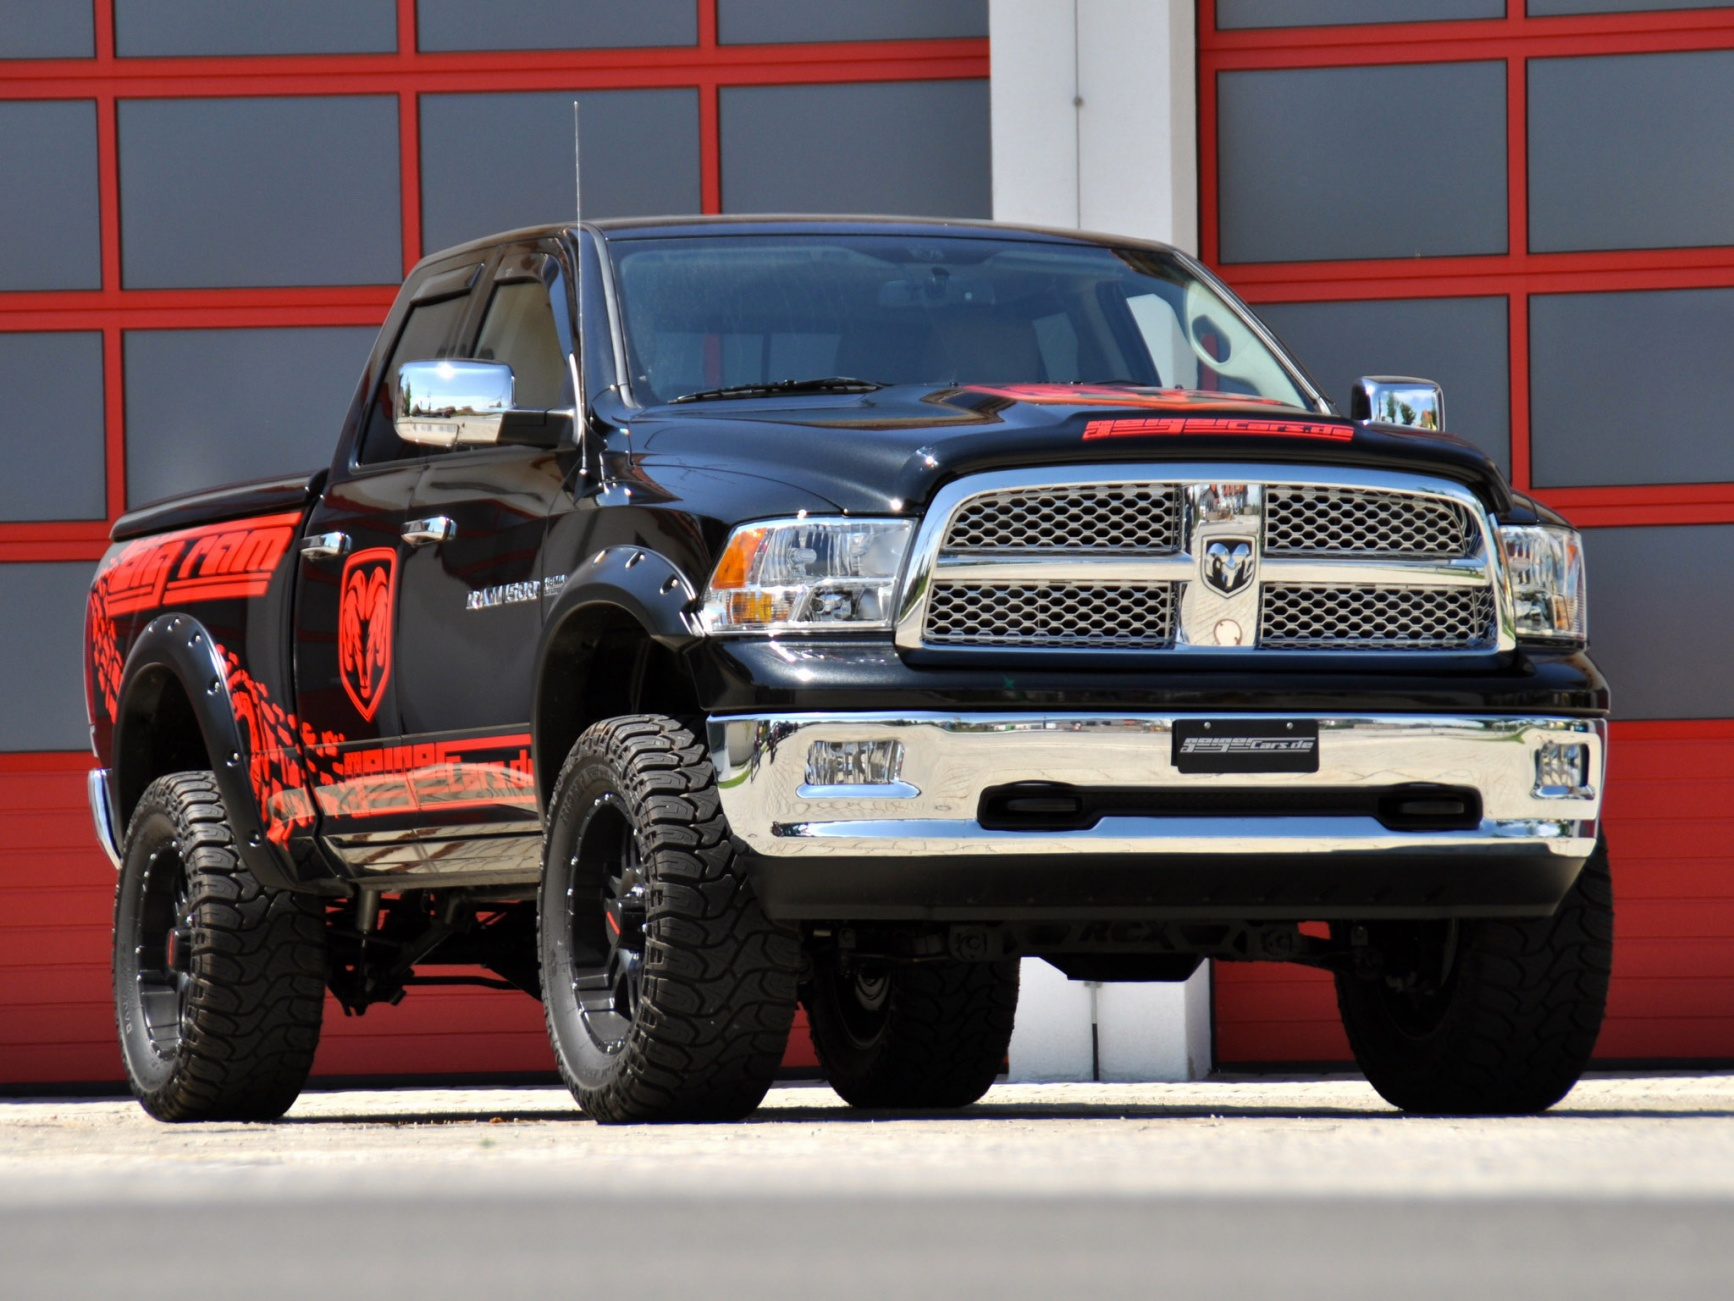 2012 Dodge Ram 1500 truck trucks offroad 4x4 wallpaper background 1734x1301